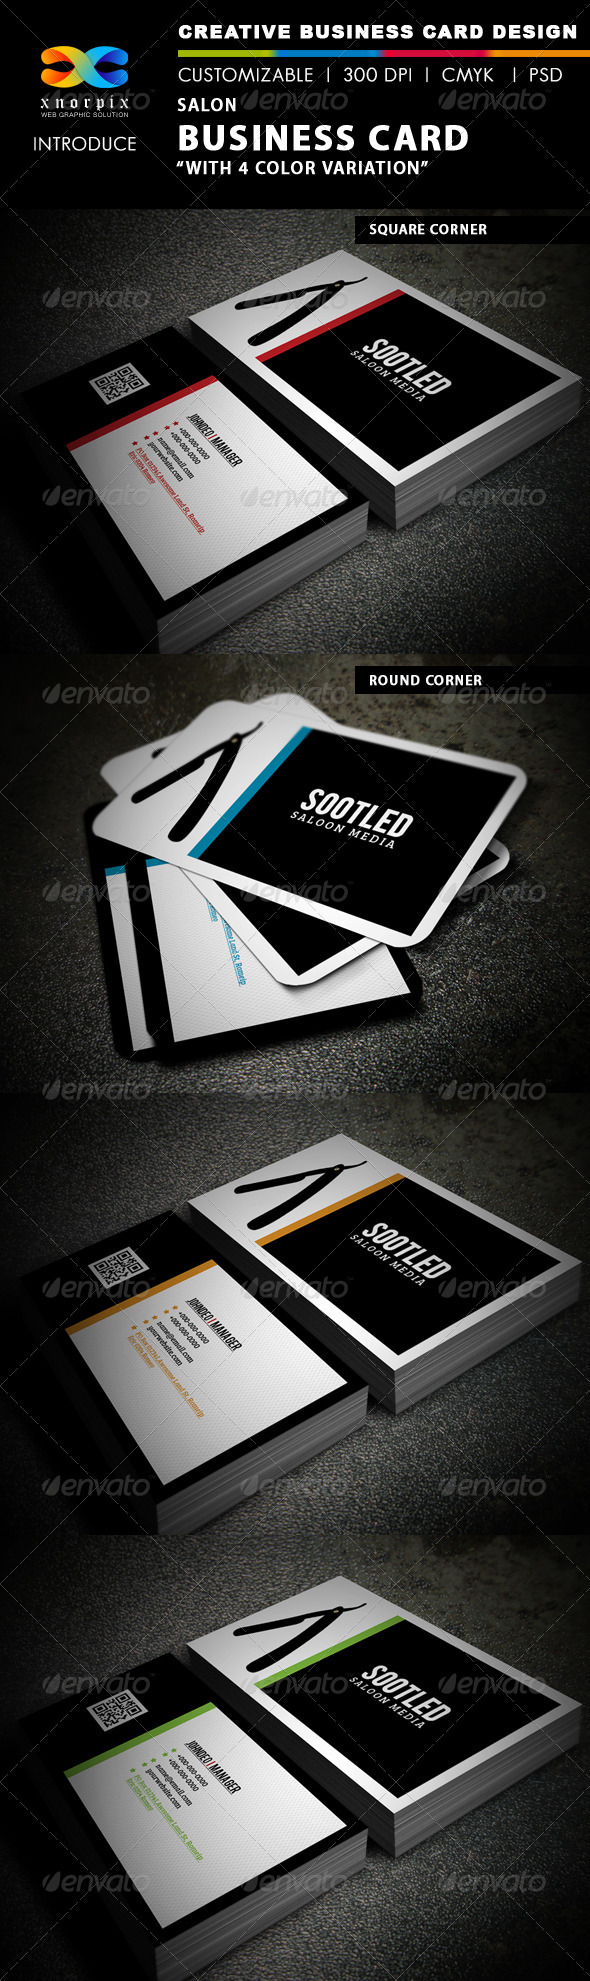 Saloon Business Card - Industry Specific Business Cards